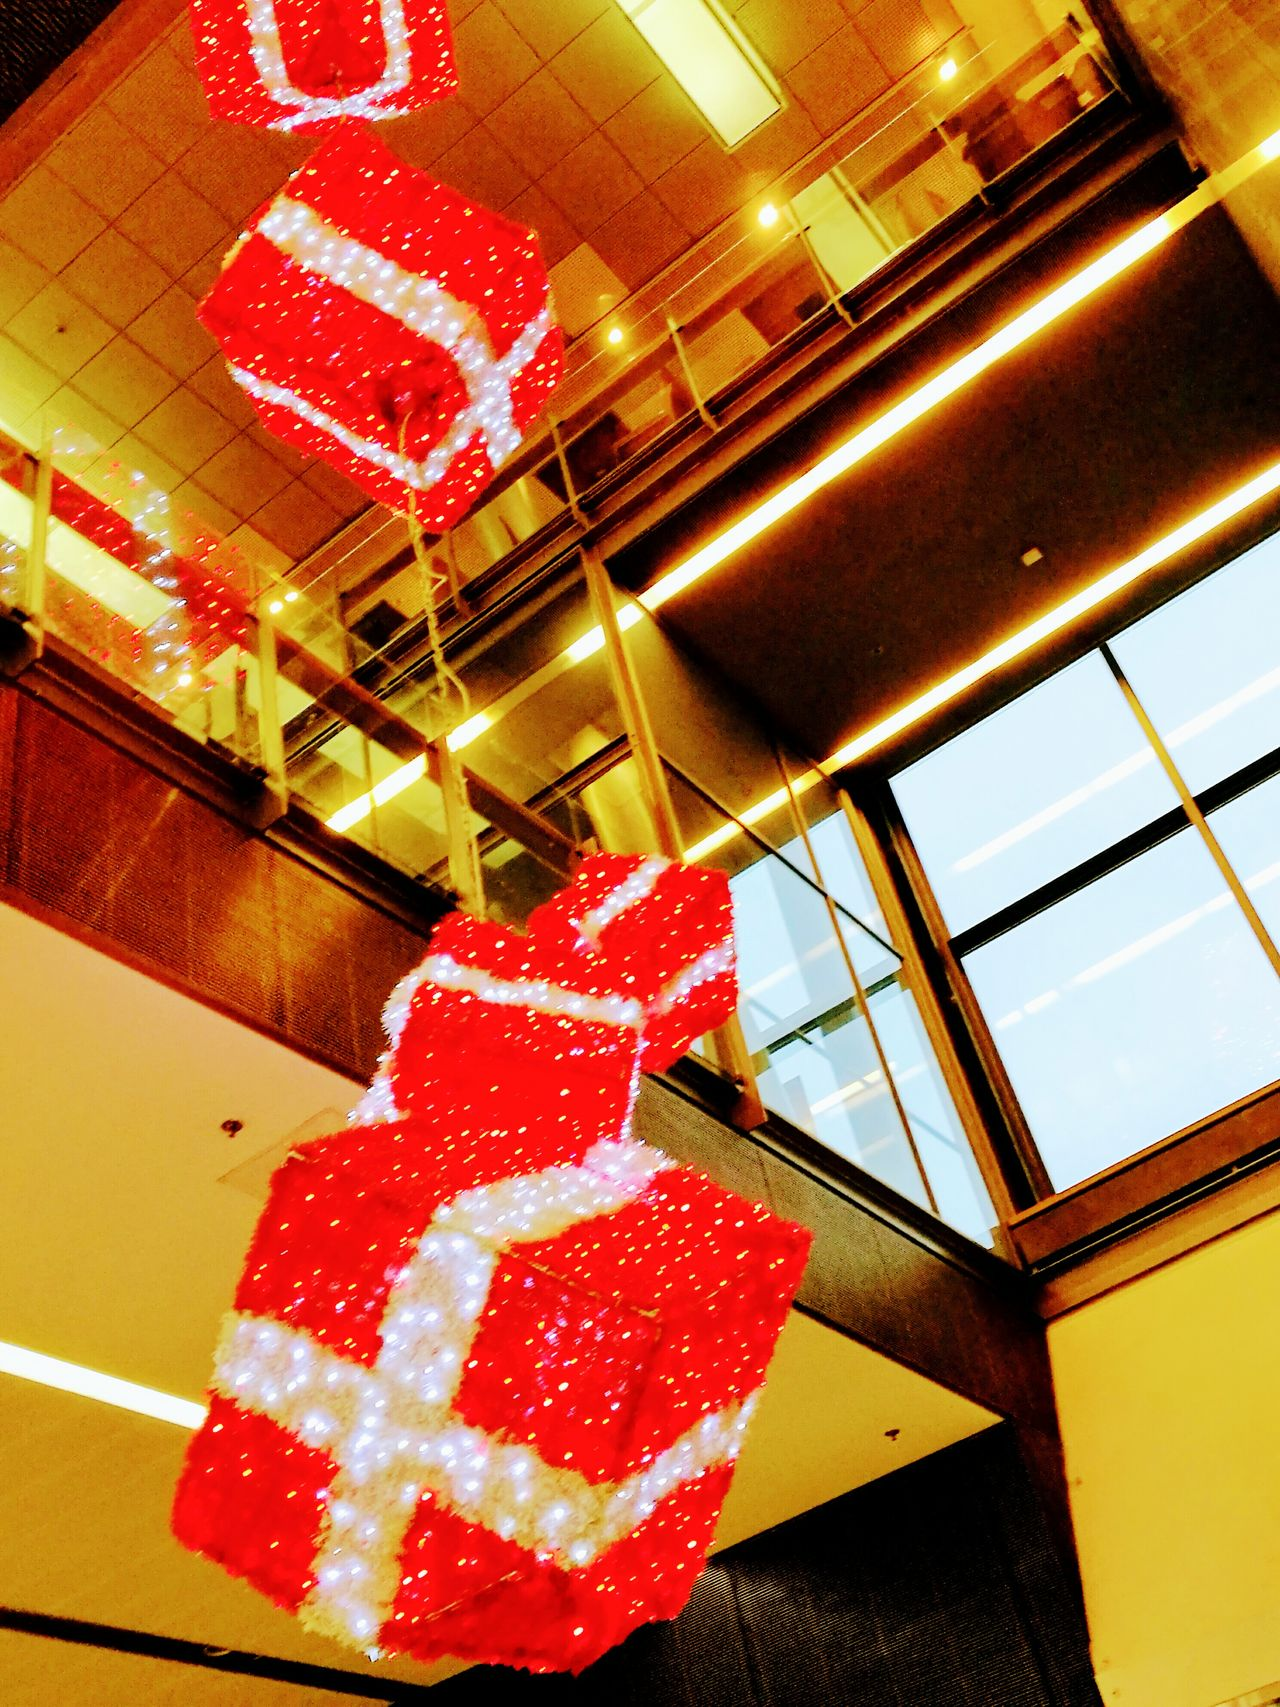 Day Indoors  Architecture Illuminated No People Red Christmas Lights Indoors  Finlandlovers Finlandiaa Finland_photolovers Finlandia Helsinki,finland Helsinki Kamppi Helsinki Central Railway Station